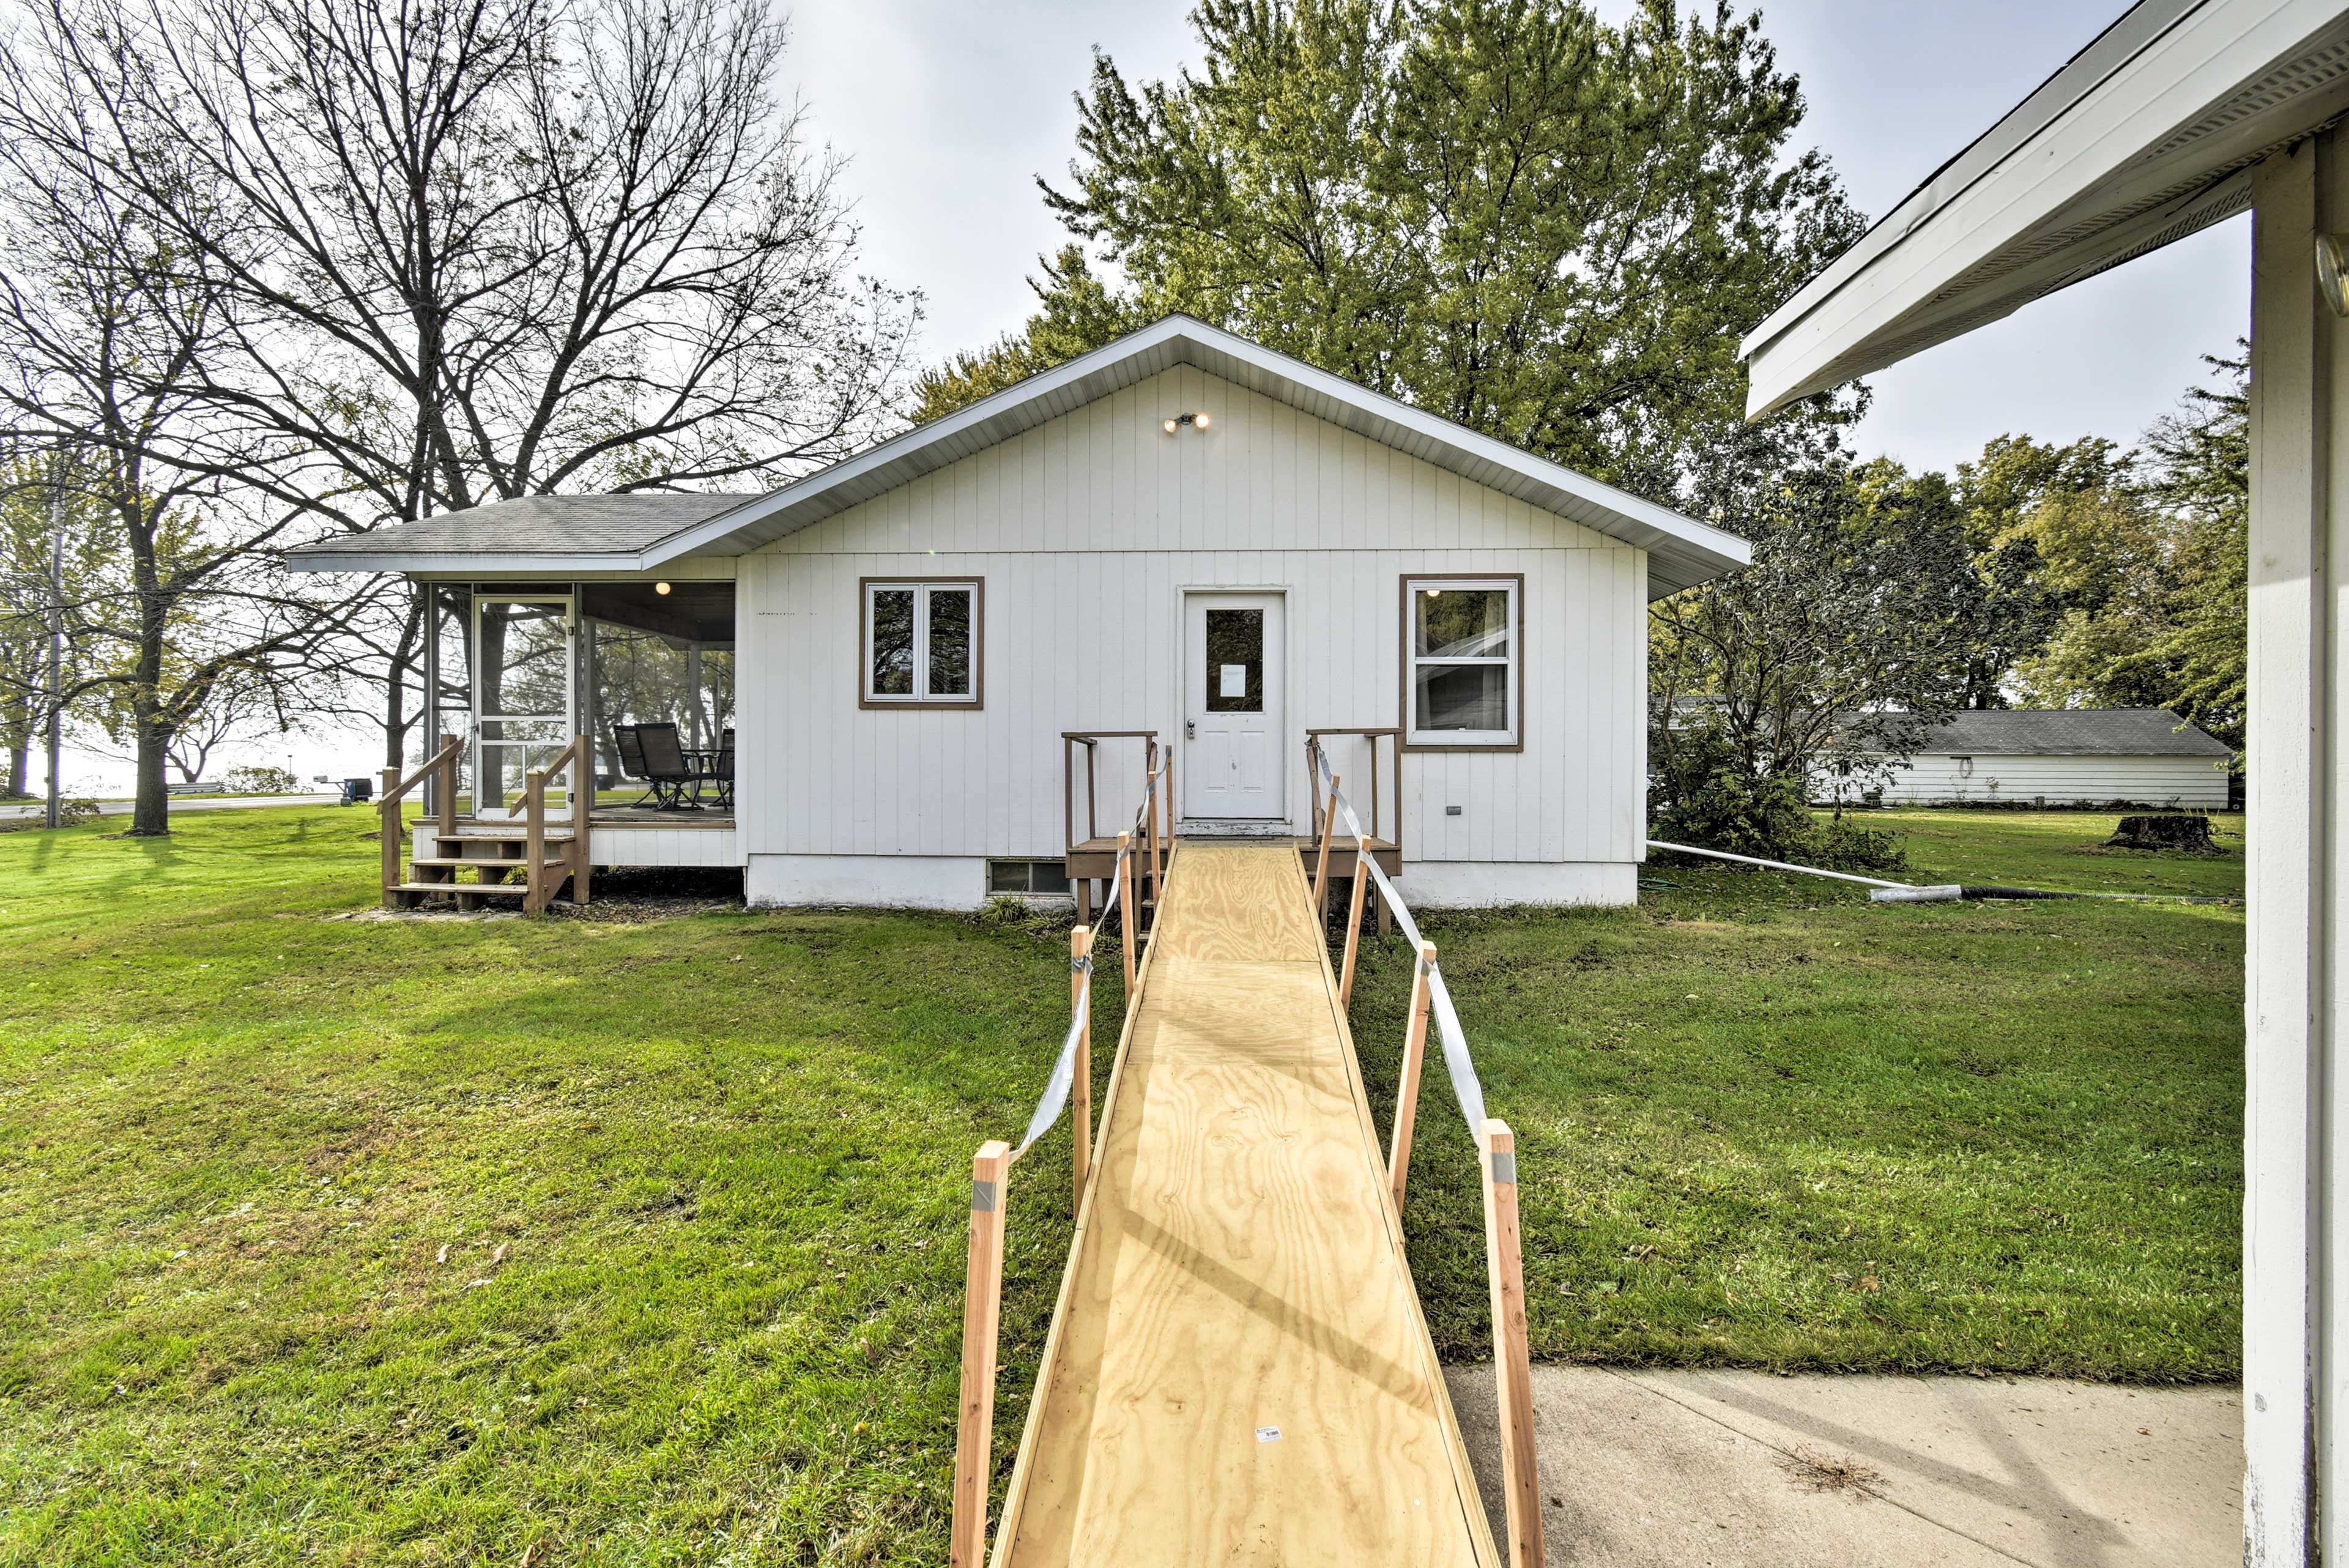 The home is handicap accessible!